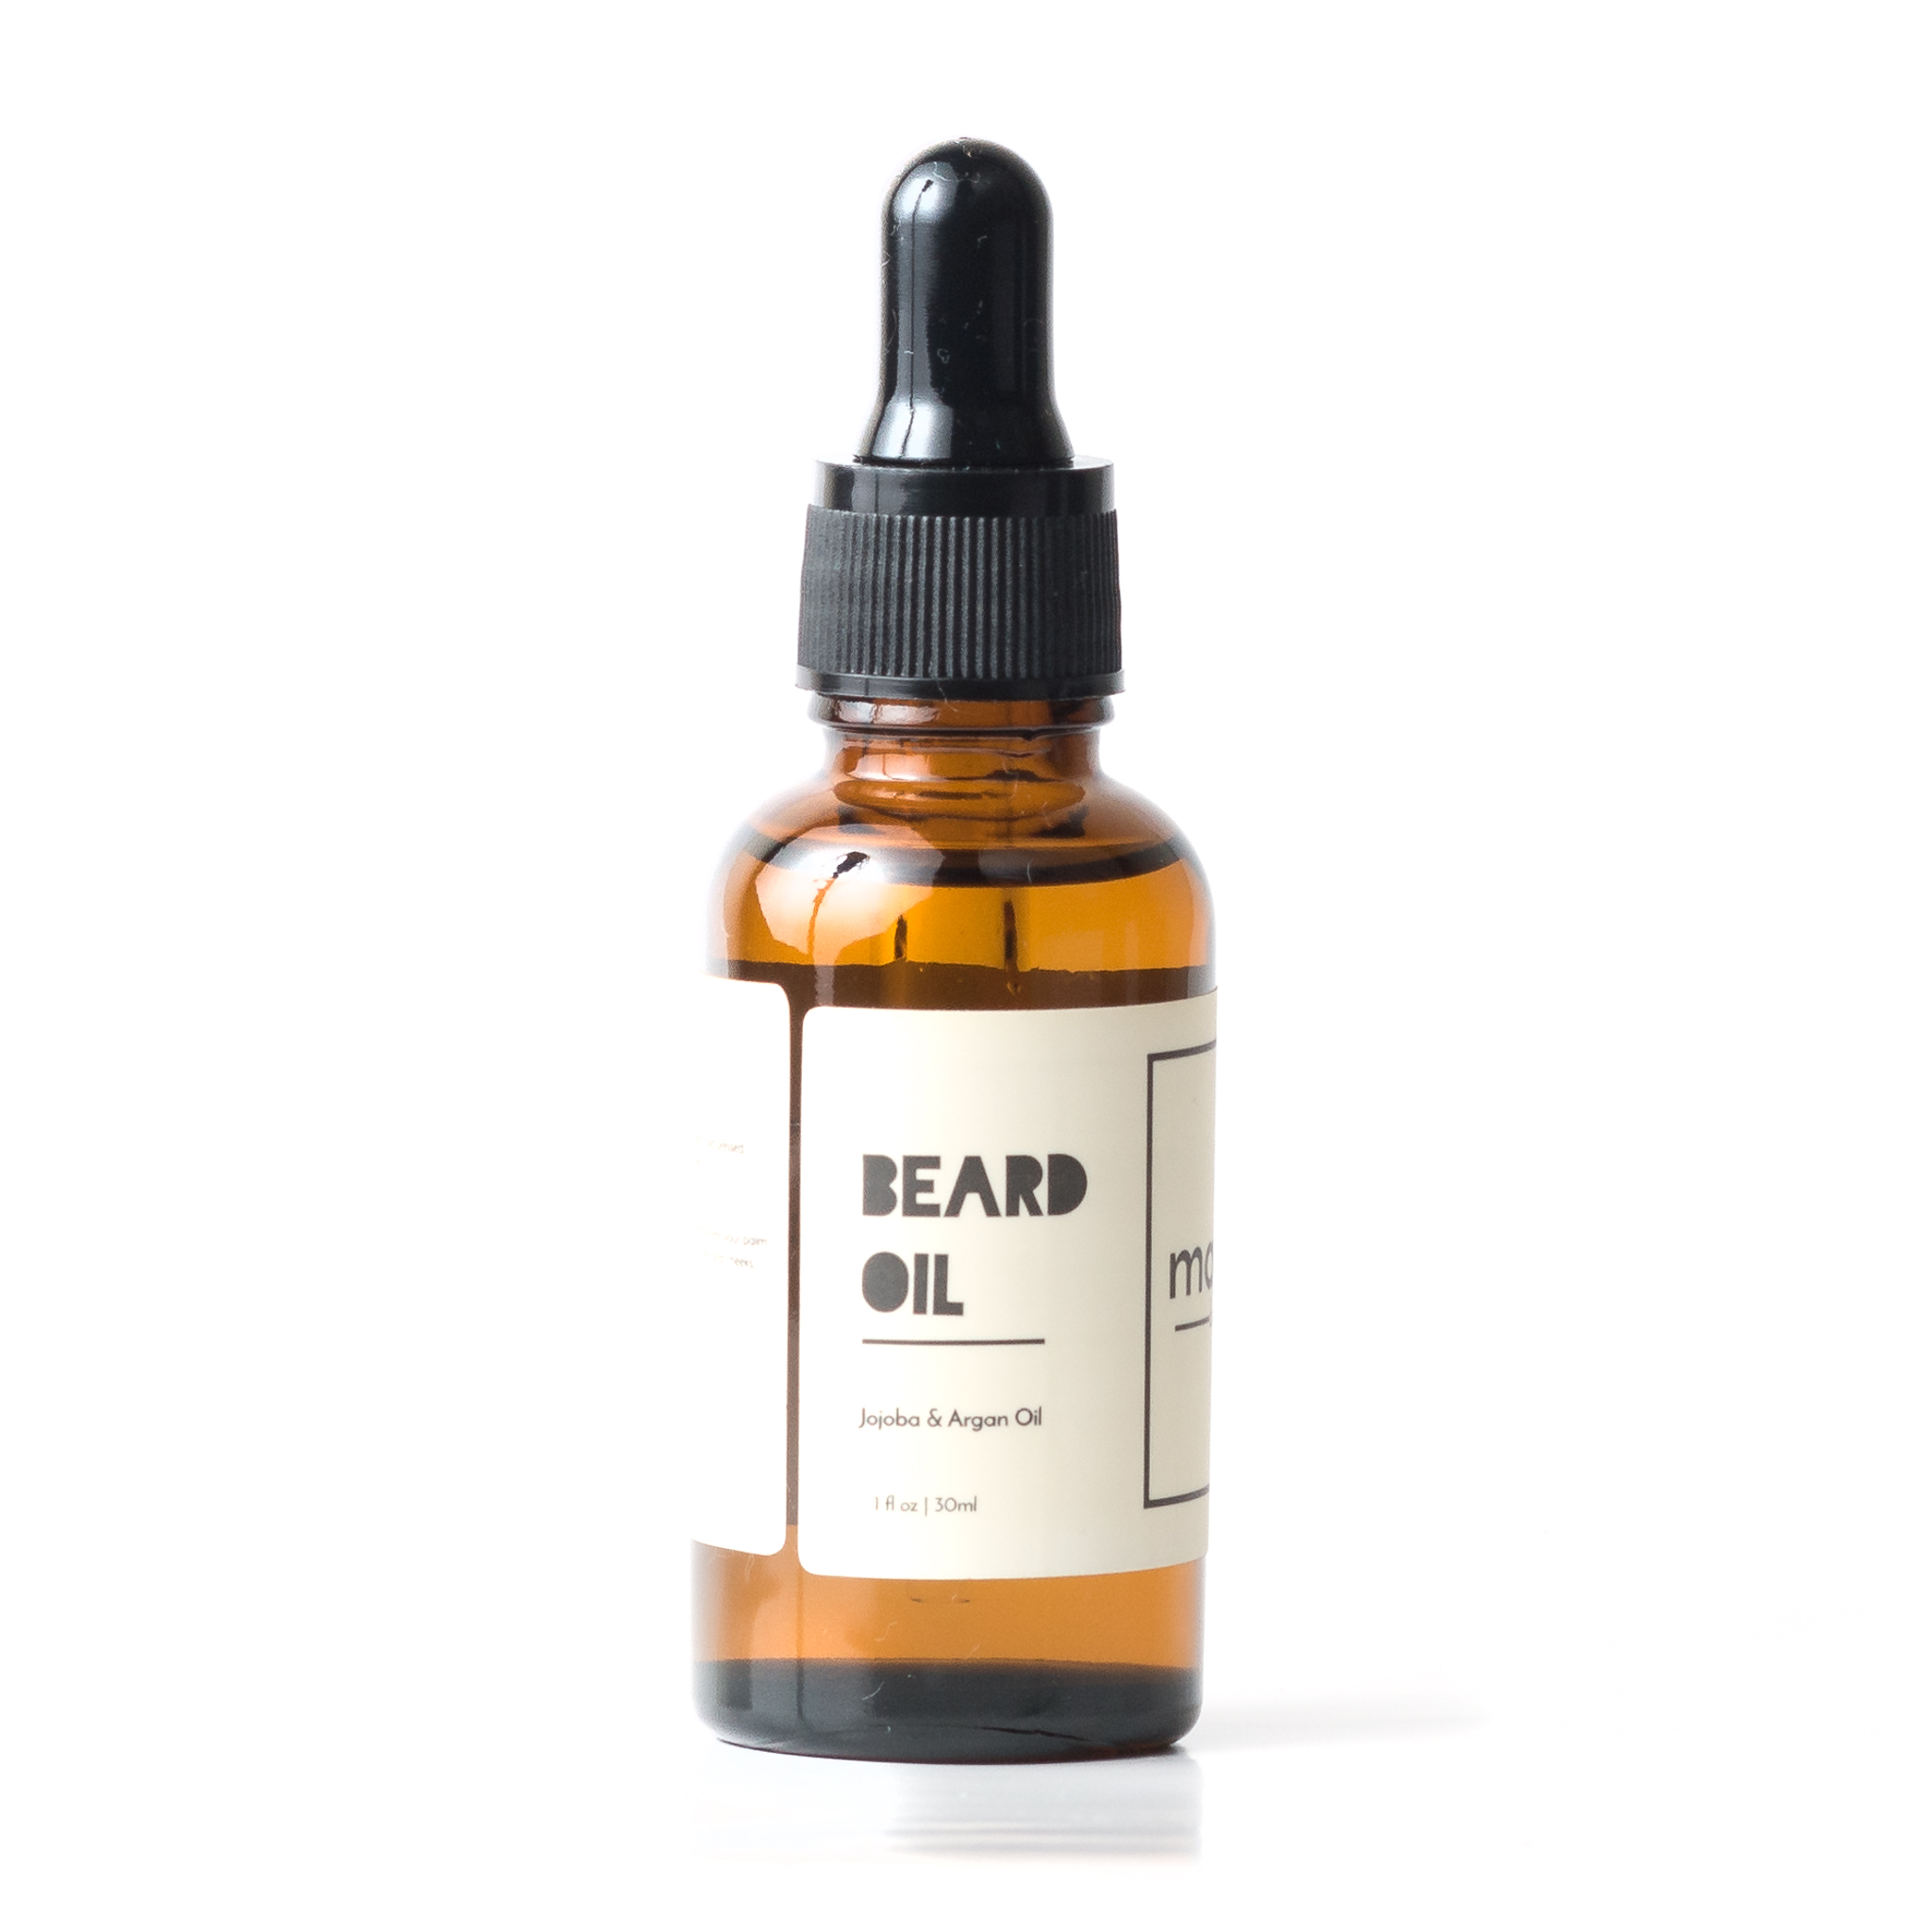 beard grooming oil uk ultimate grizzly adam beard care kit grizzly adam organic shampoo with. Black Bedroom Furniture Sets. Home Design Ideas